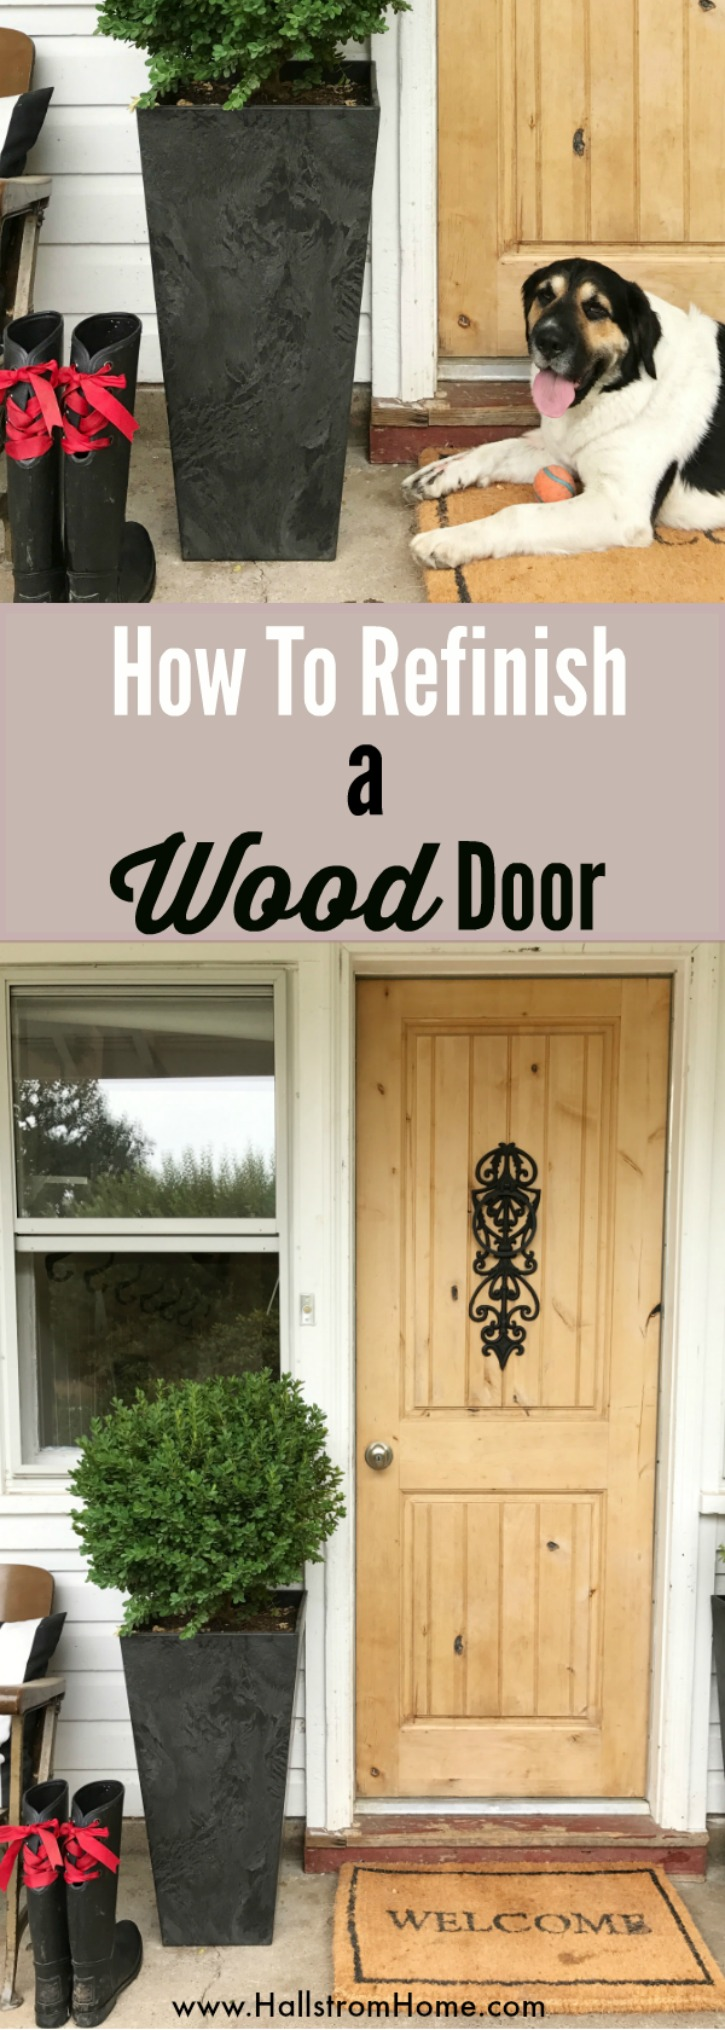 How to Refinish a Wood Exterior Door